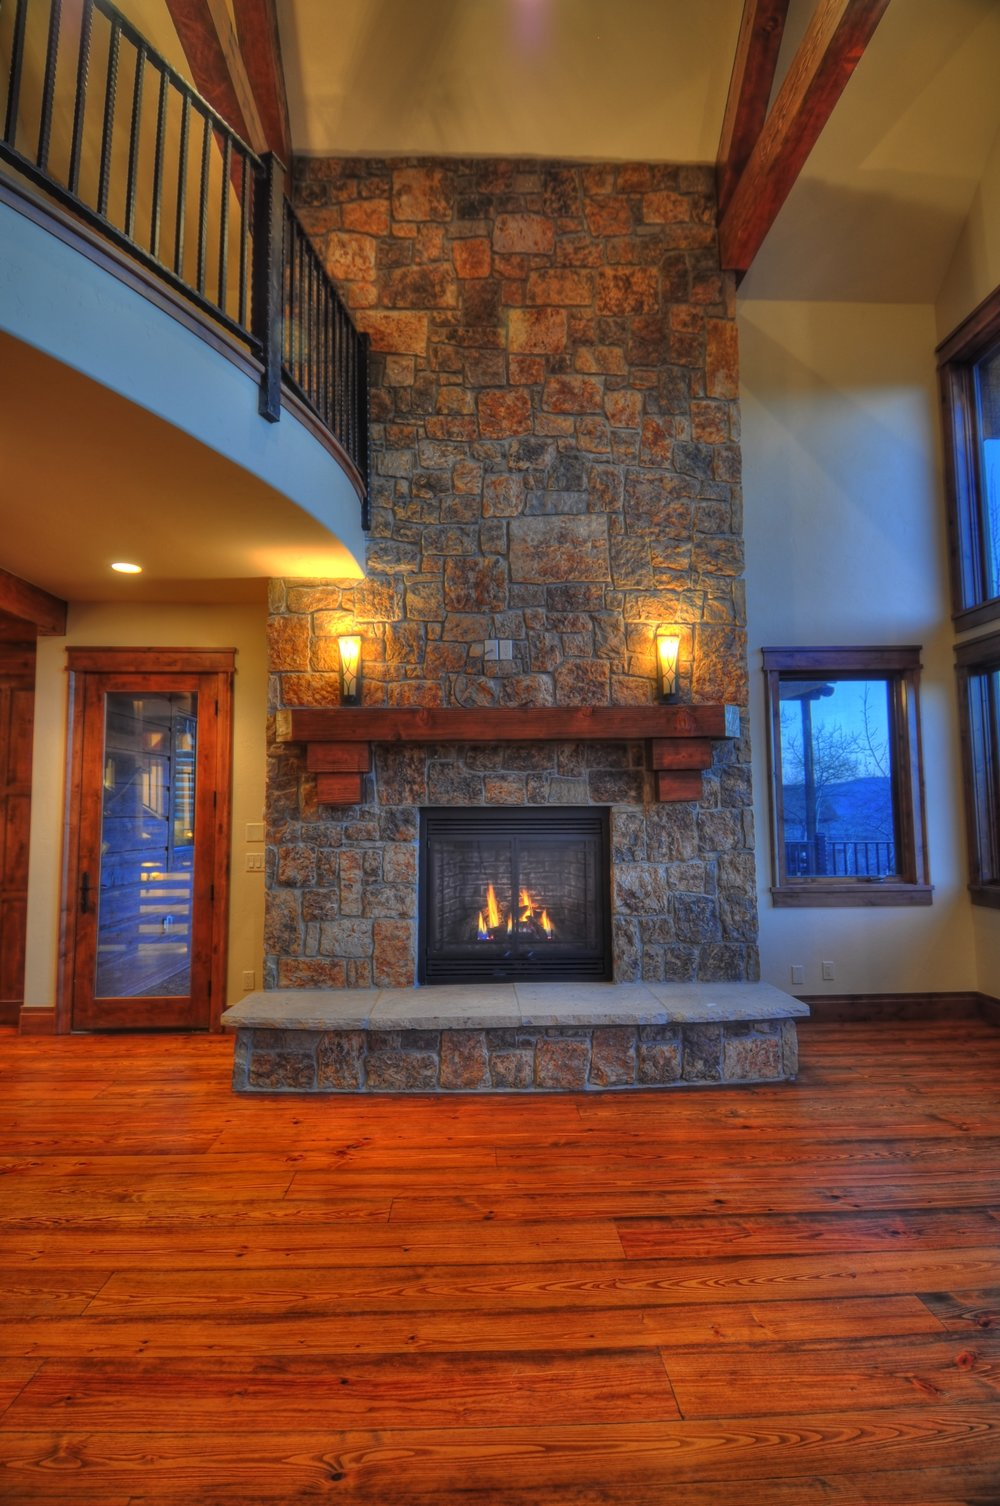 Fireplace_DSC_8310_original.jpg